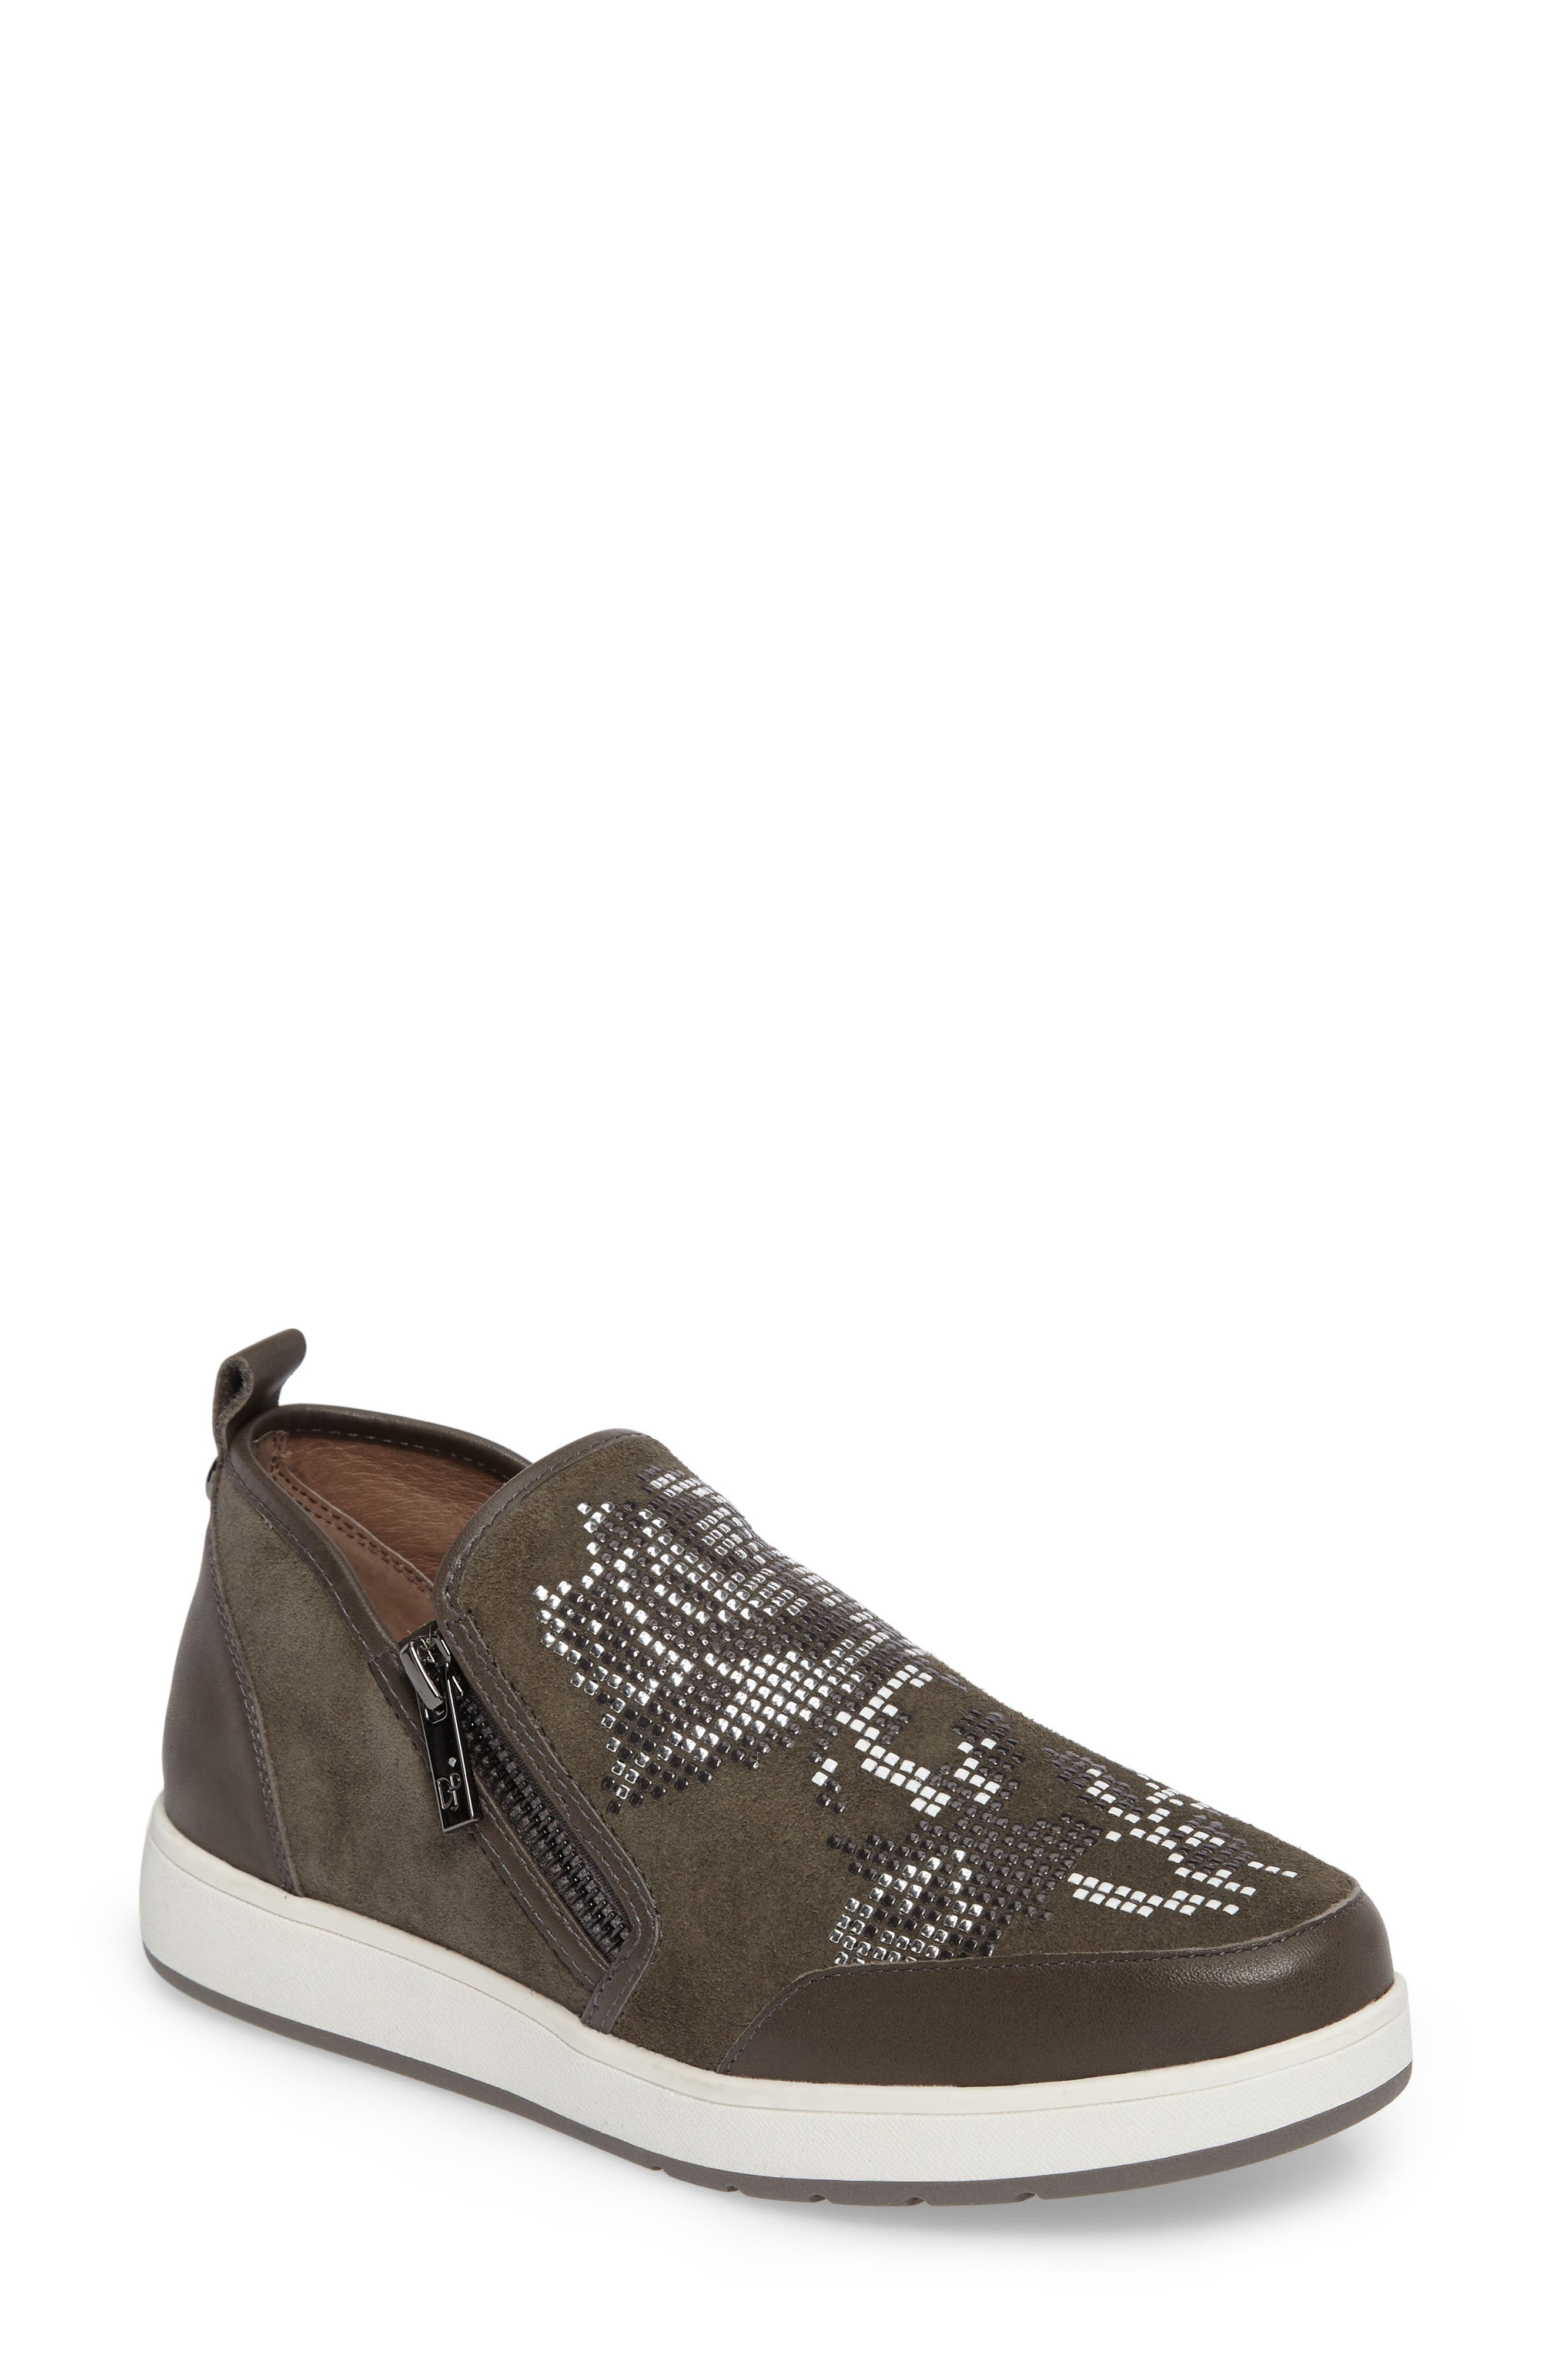 Donald J Pliner Mylasp Embellished Sneaker,                         Main,                         color, Carbon Leather